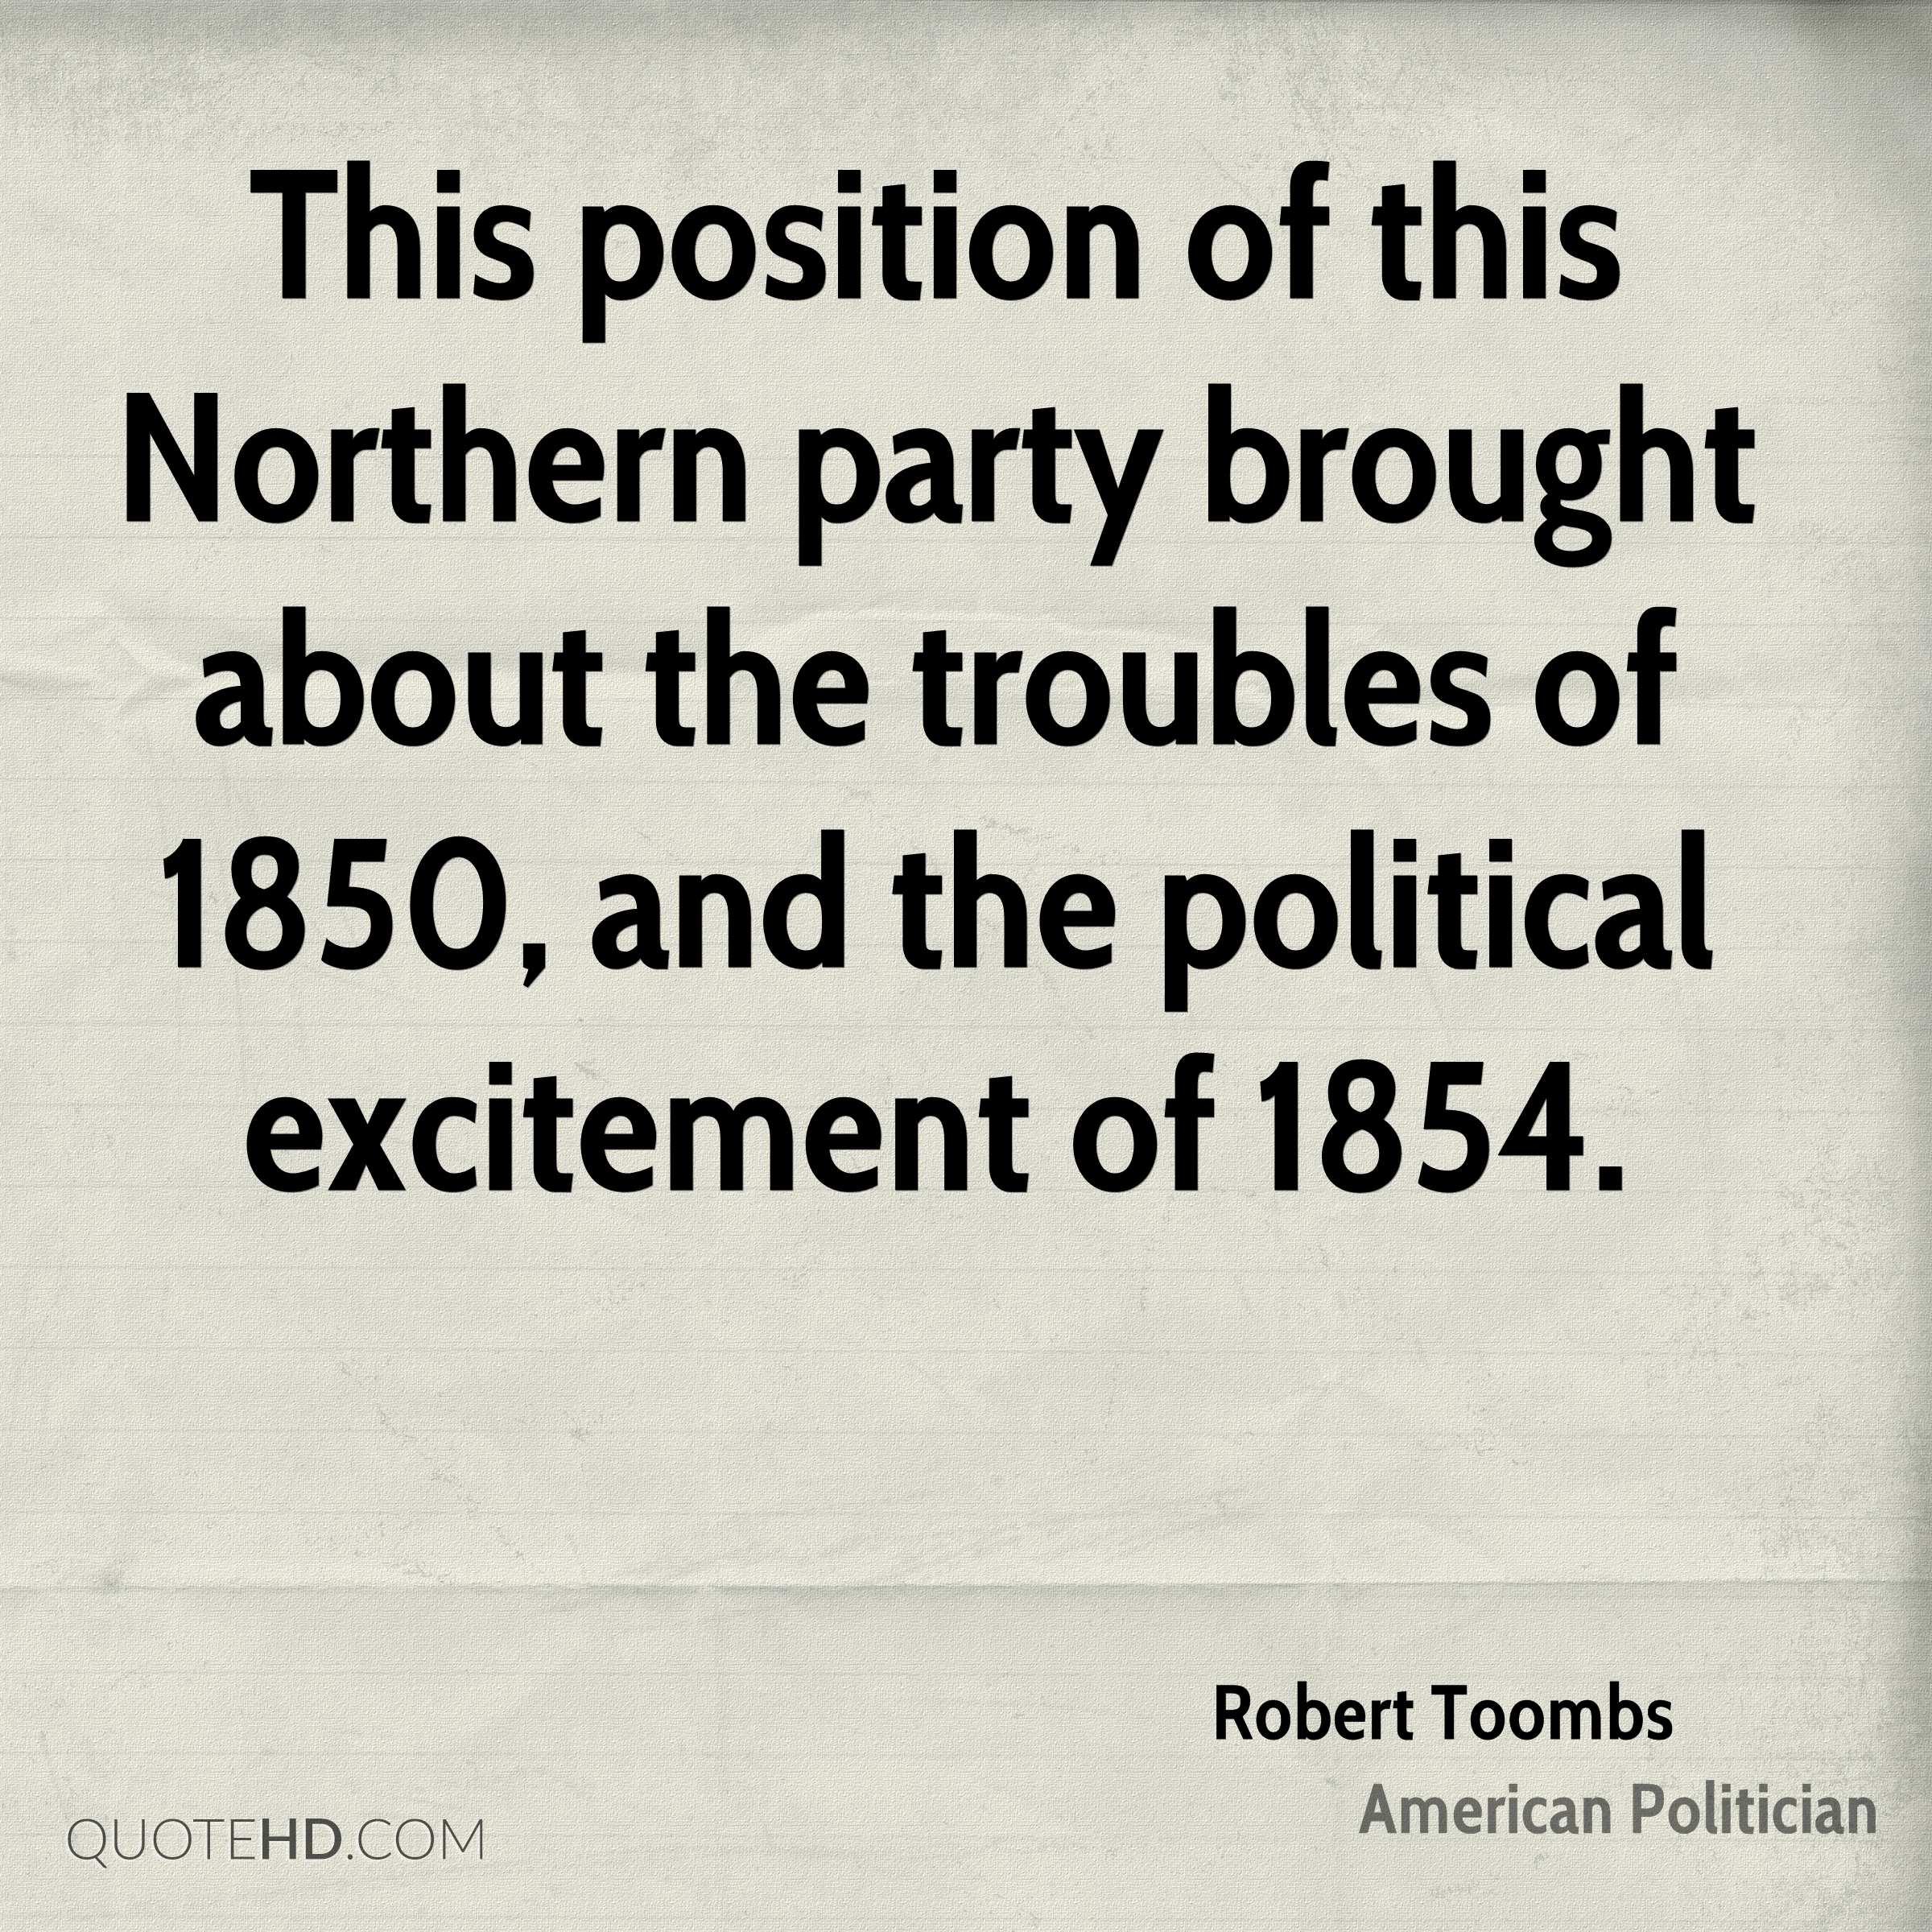 This position of this Northern party brought about the troubles of 1850, and the political excitement of 1854.